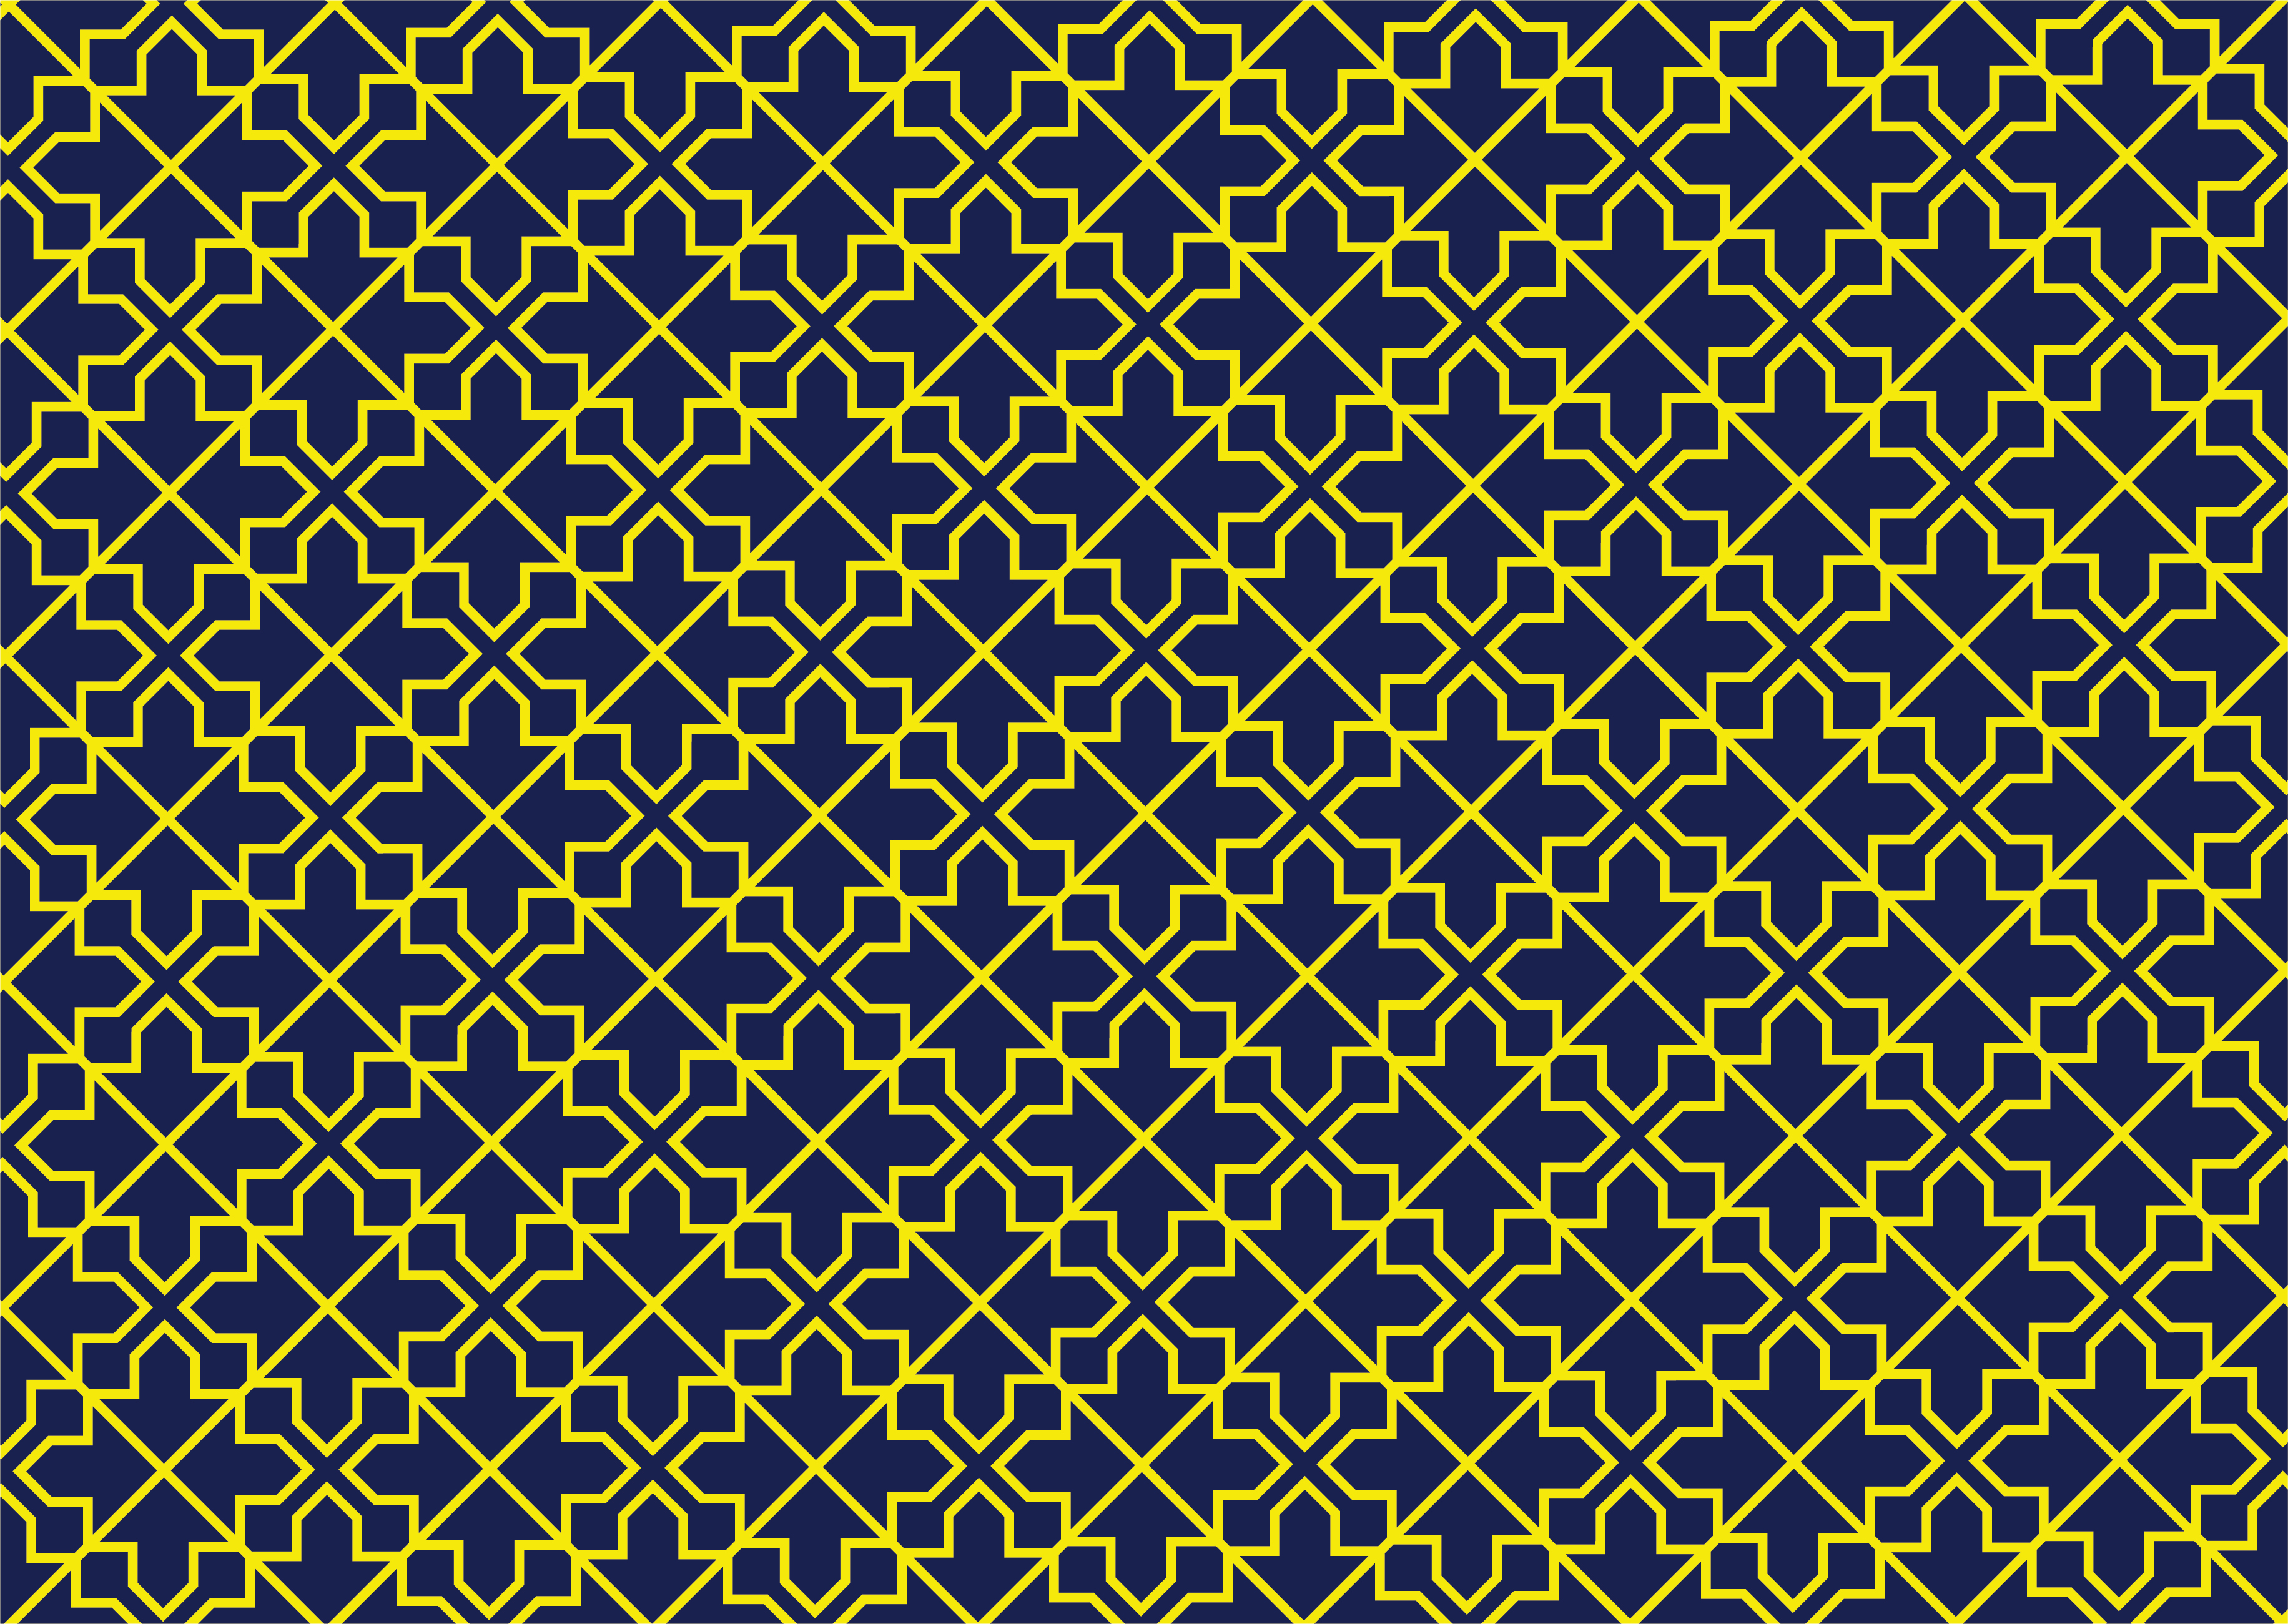 Yellow and navy geometric line pattern